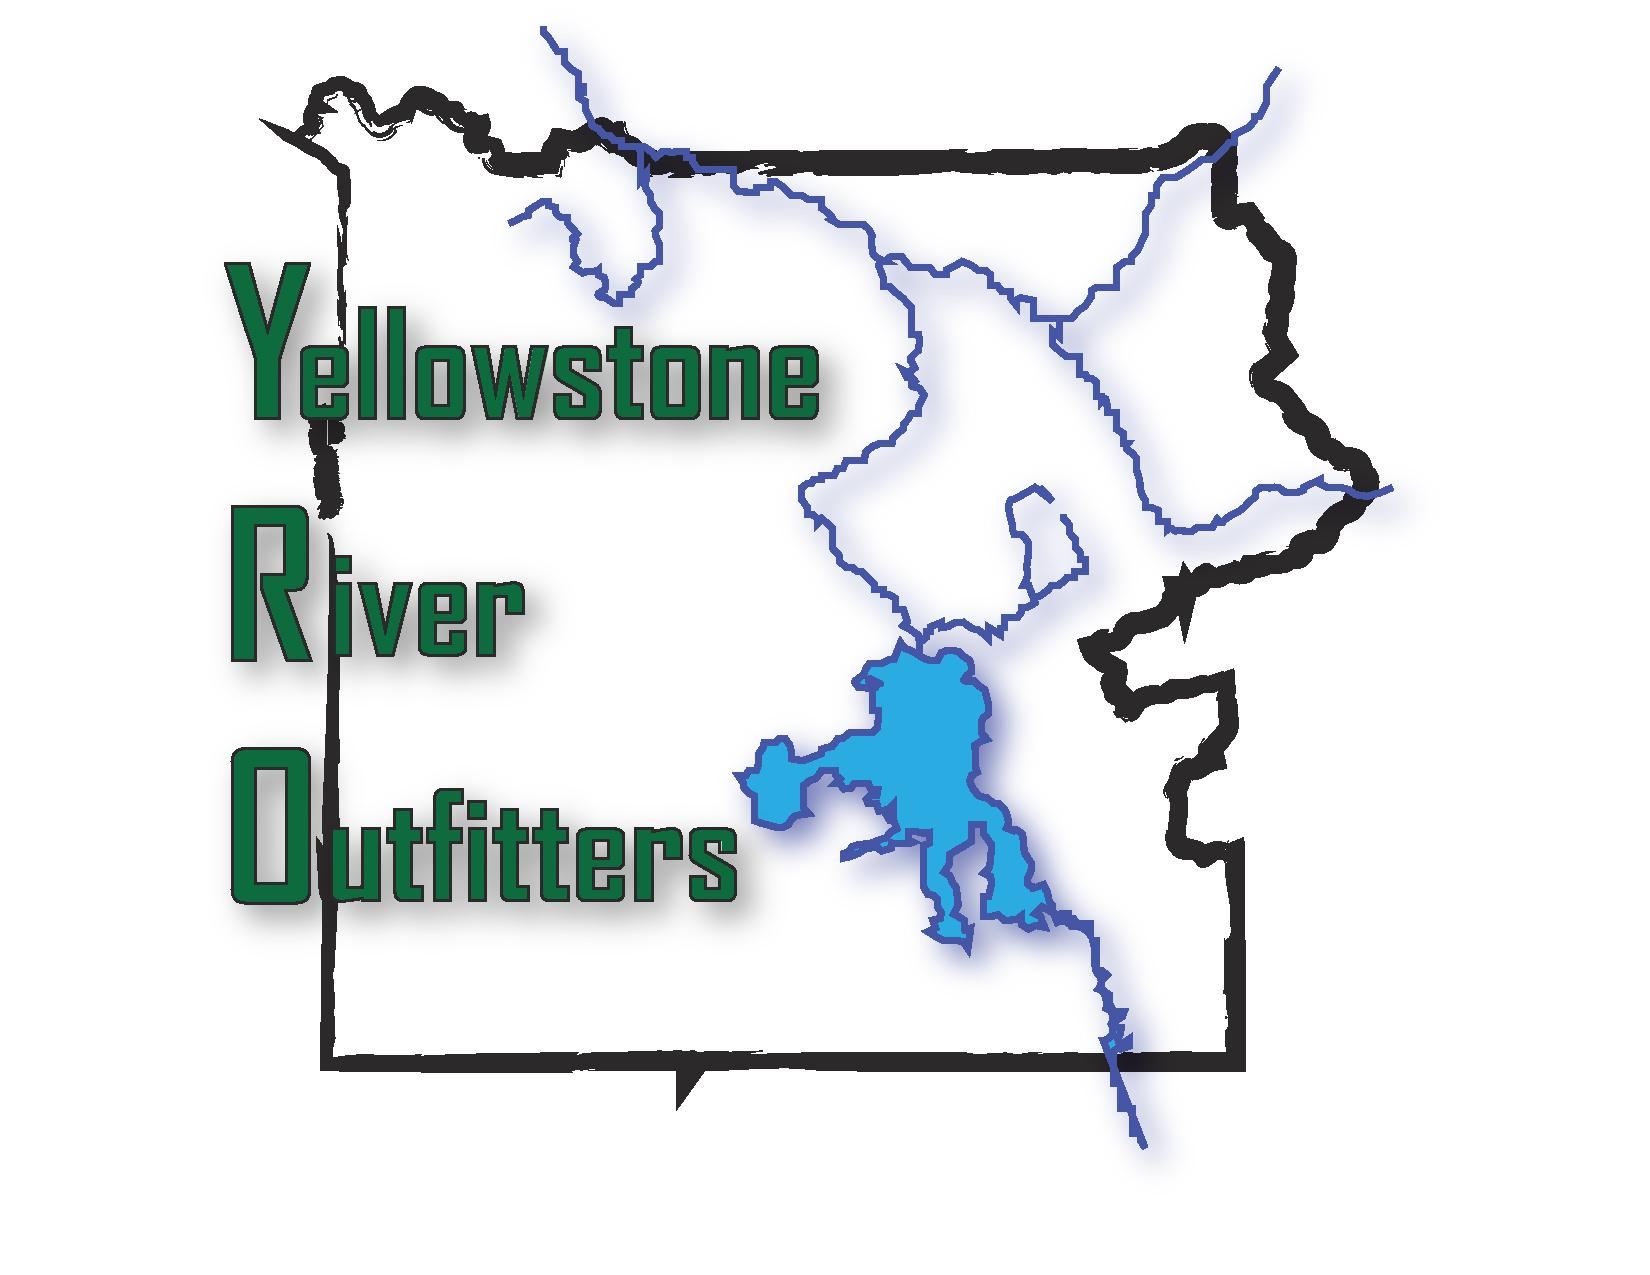 CONTACT INFO - 420 N 11th StLivingston, MT 59047Phone: (406) 531-1838Email: yellowstoneriveroutfitters@gmail.com